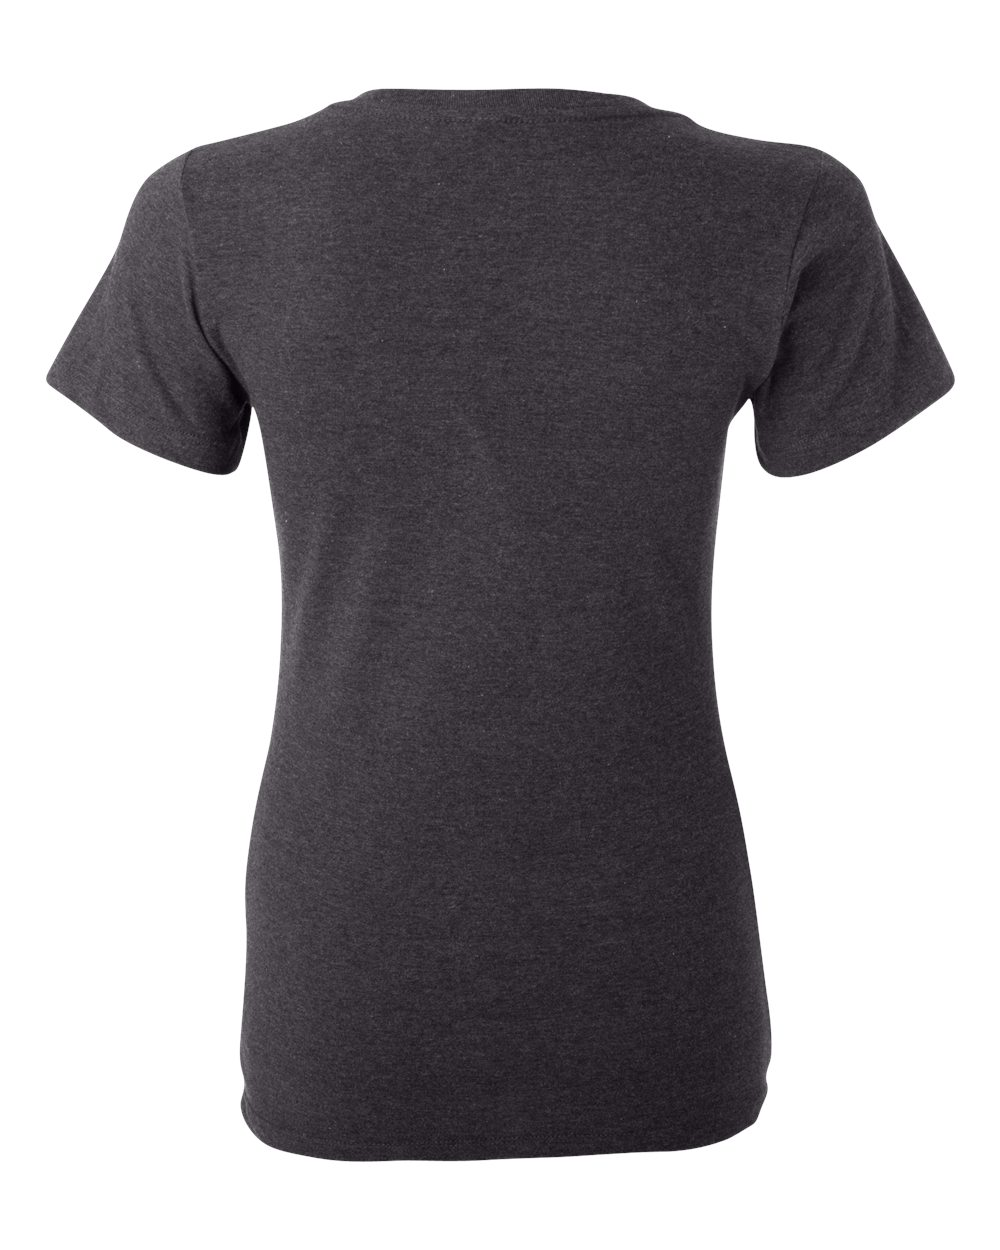 Bella-Canvas-Women-039-s-Jersey-Short-Sleeve-Deep-V-Neck-T-Shirt-B6035-S-2XL thumbnail 61